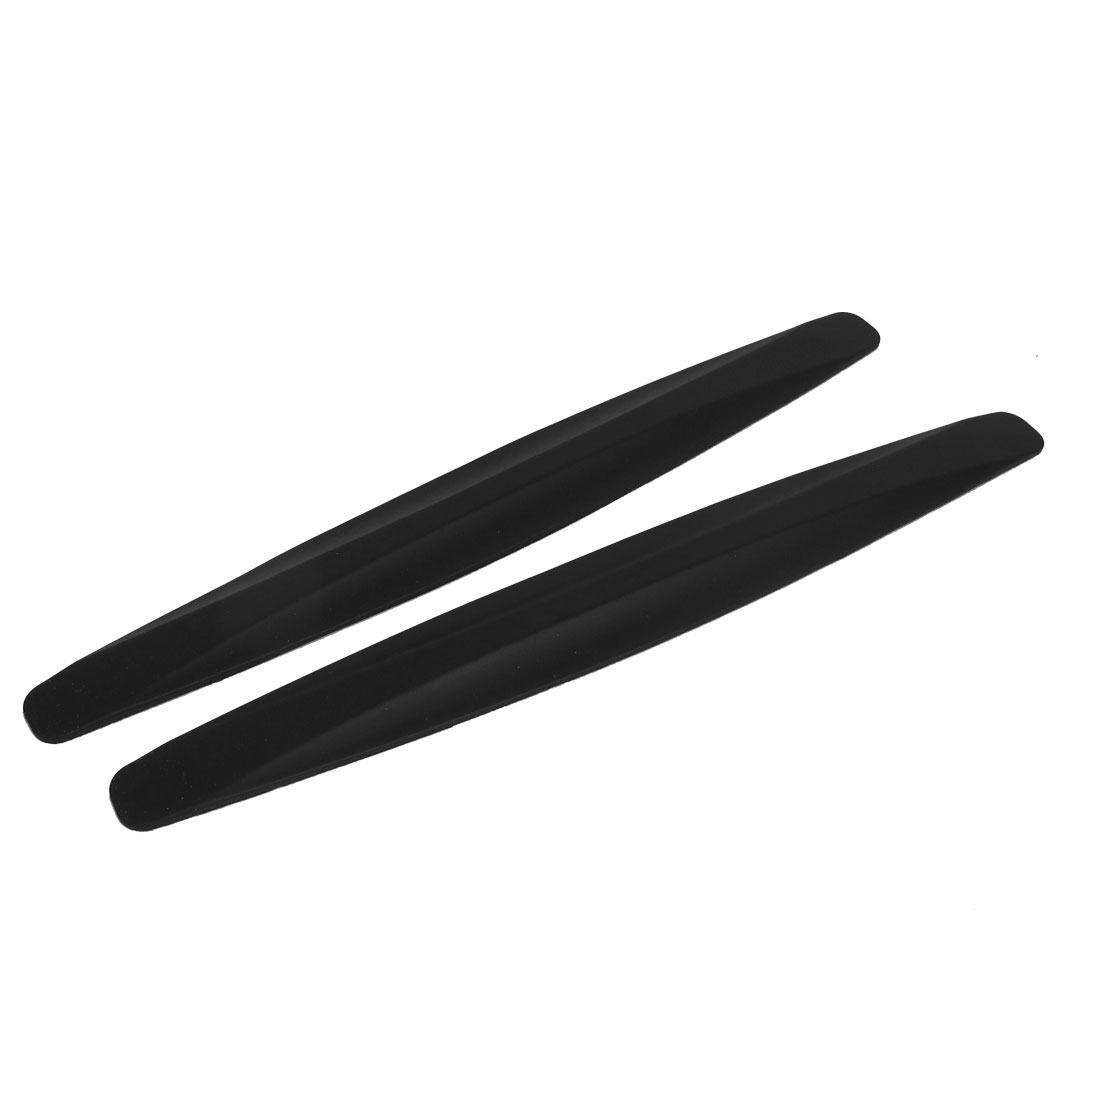 2pcs Black Soft Rubber Bumper Guard Protectors Stickers for Car